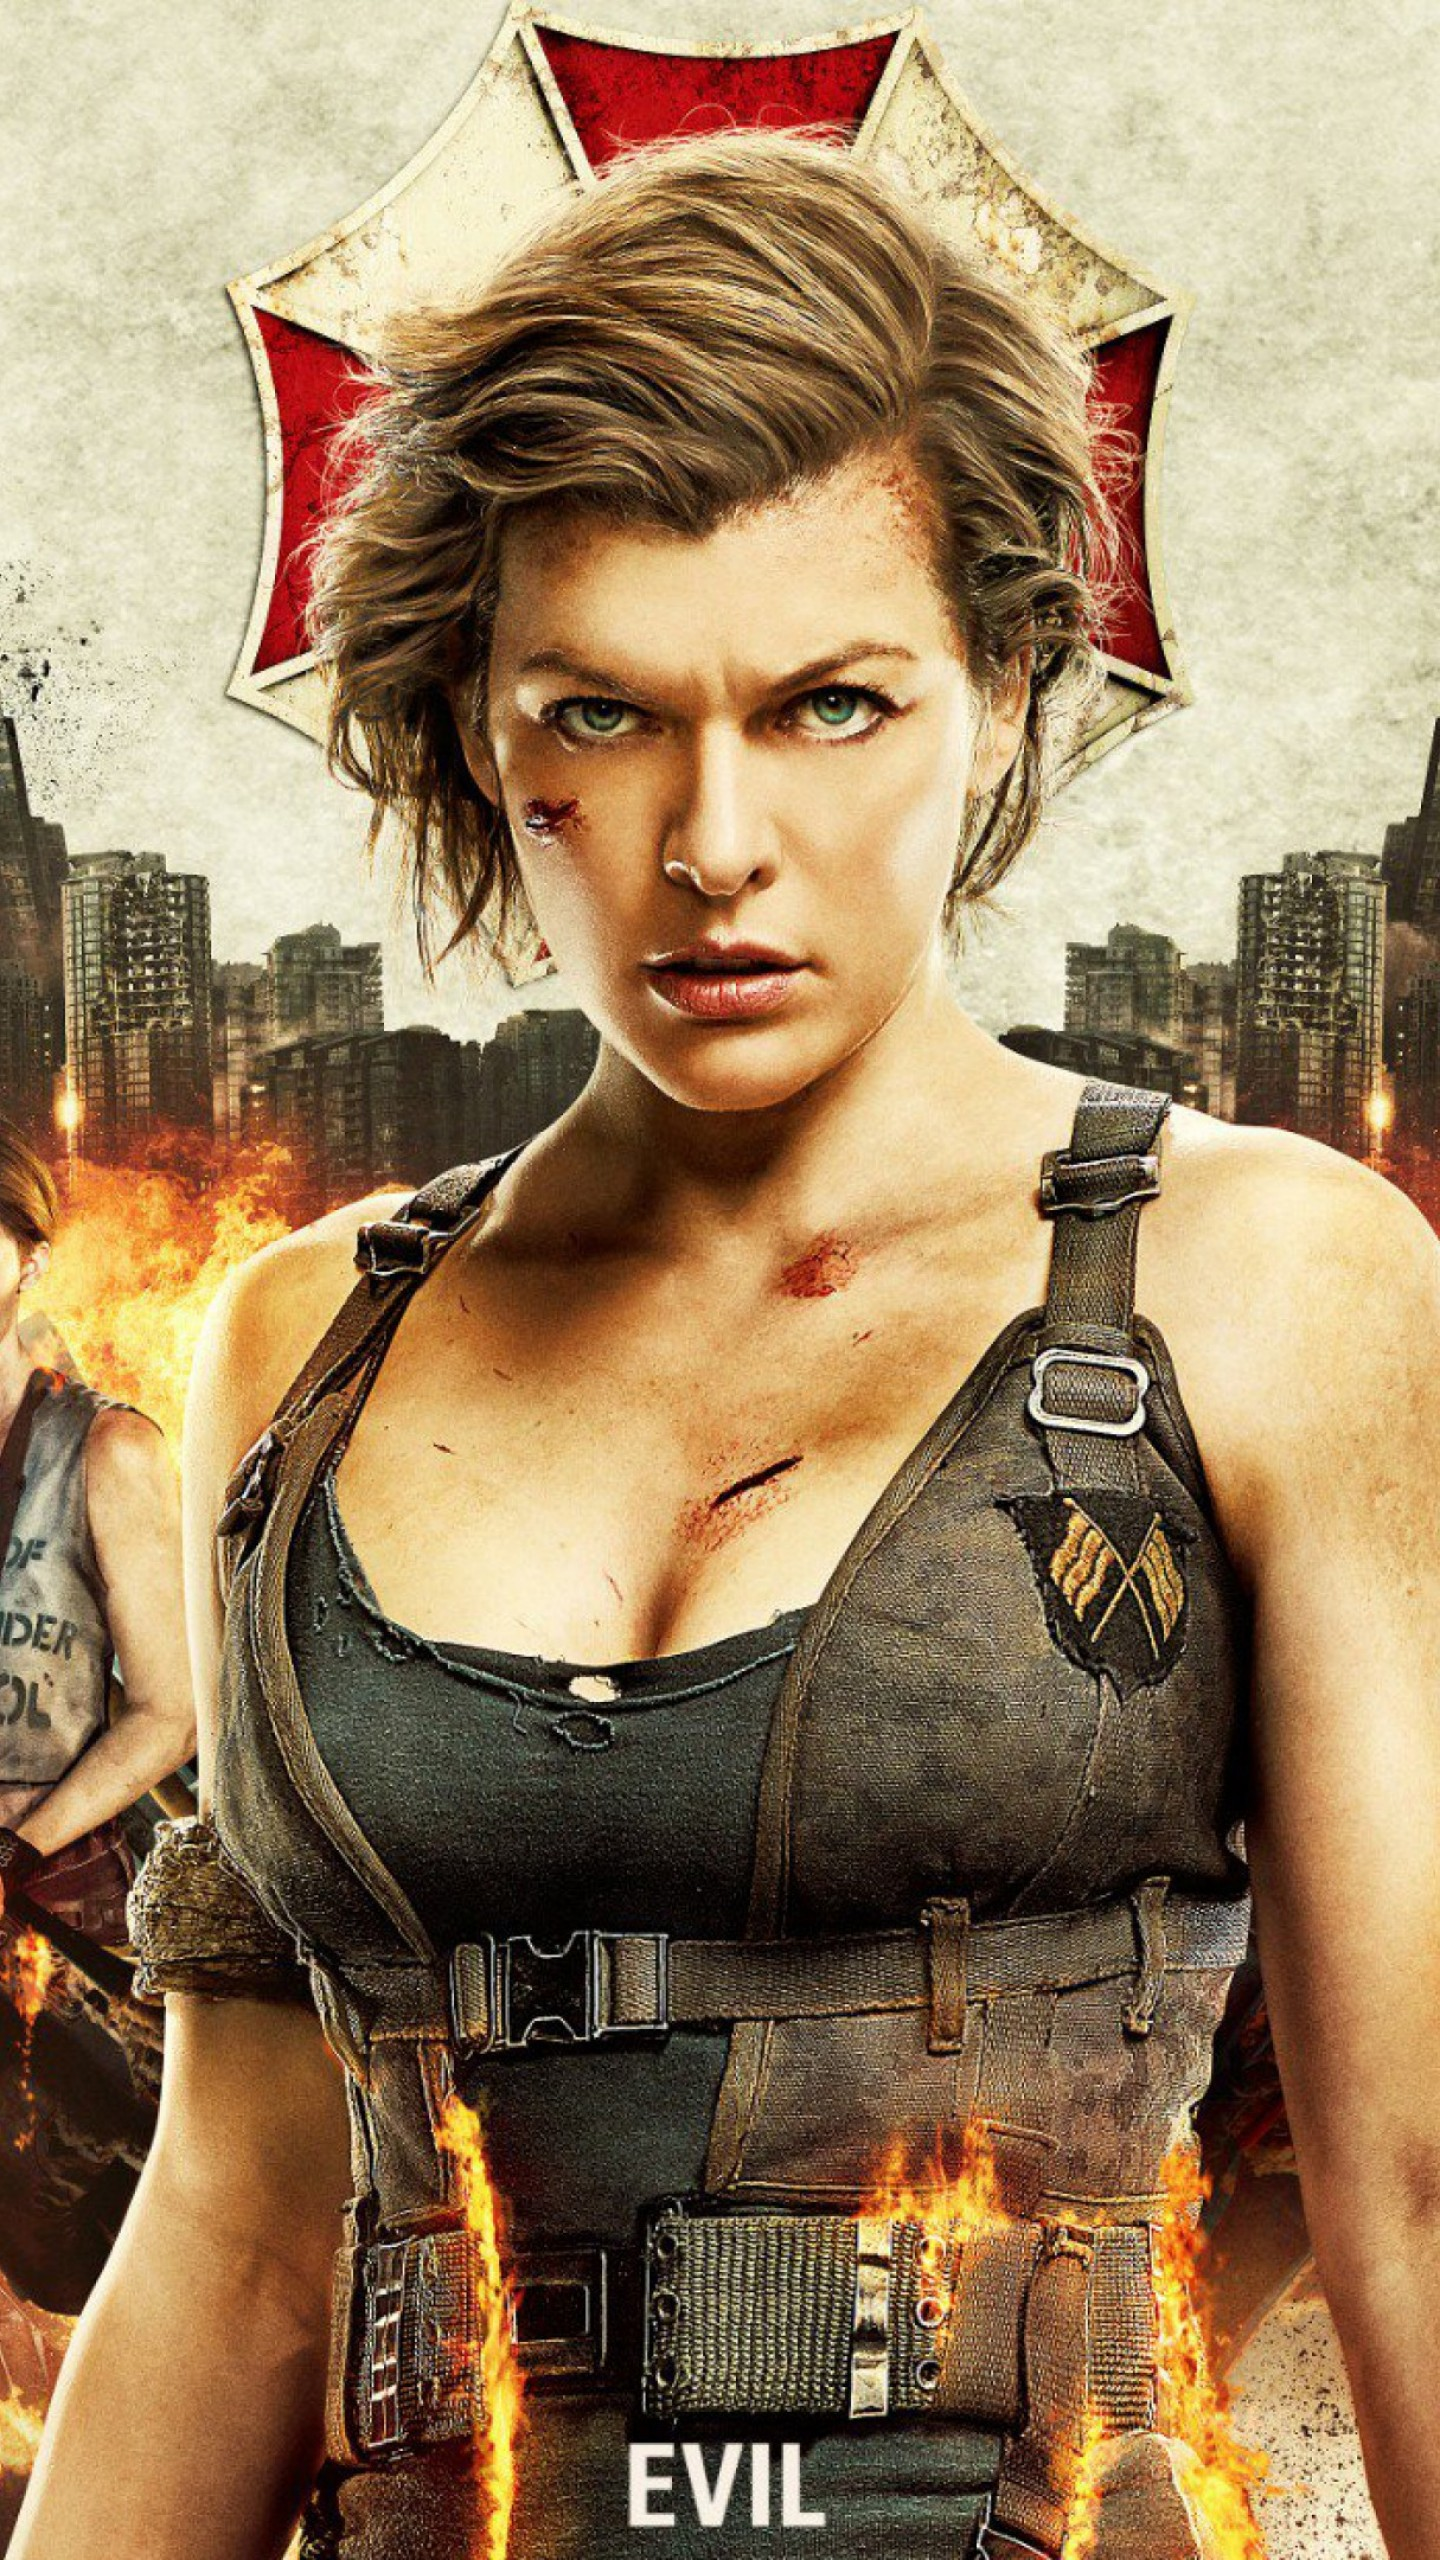 1920x1080 Girls And Guuns Wallpapers Wallpaper Resident Evil The Final Chapter Milla Jovovich